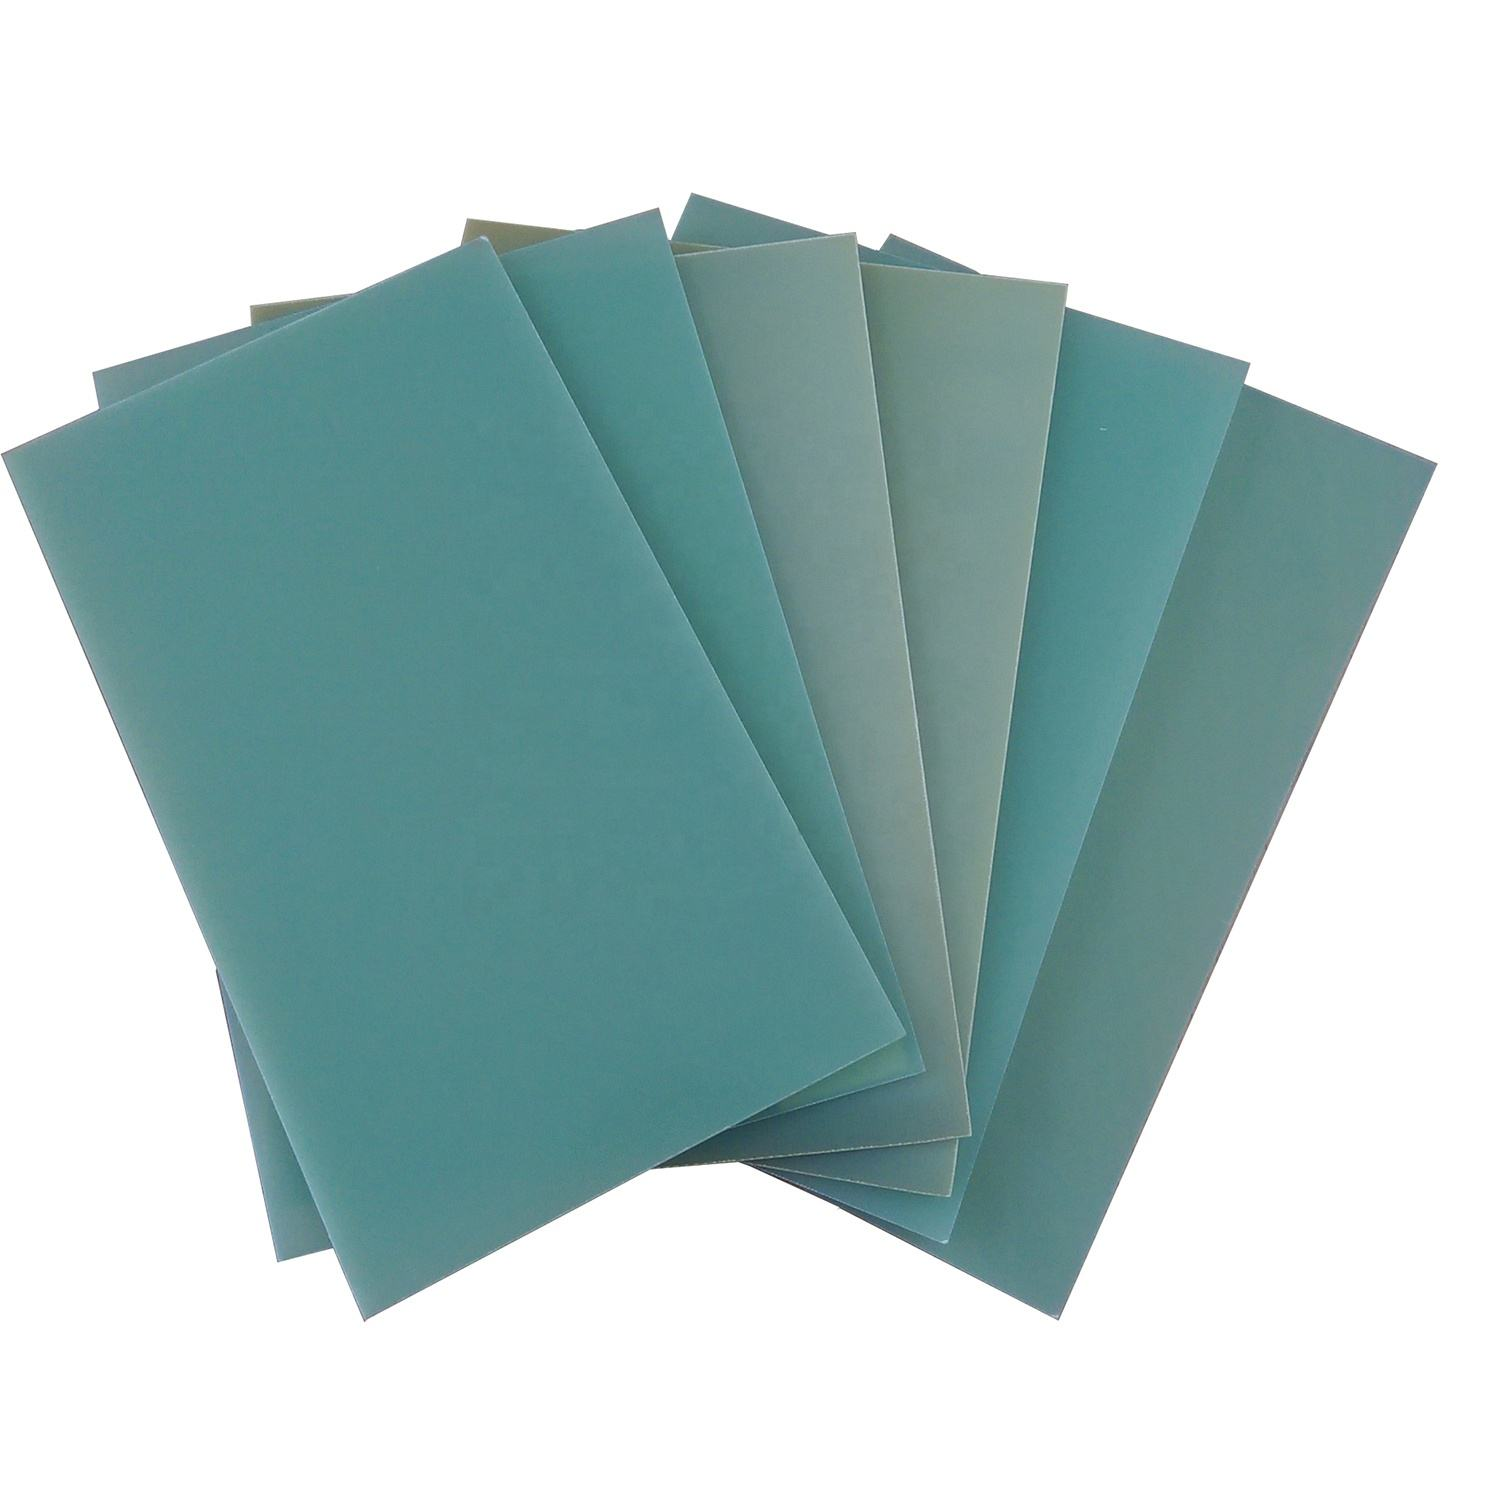 Electrical Insulation G10 Fiberglass Epoxy Resin Laminate Board